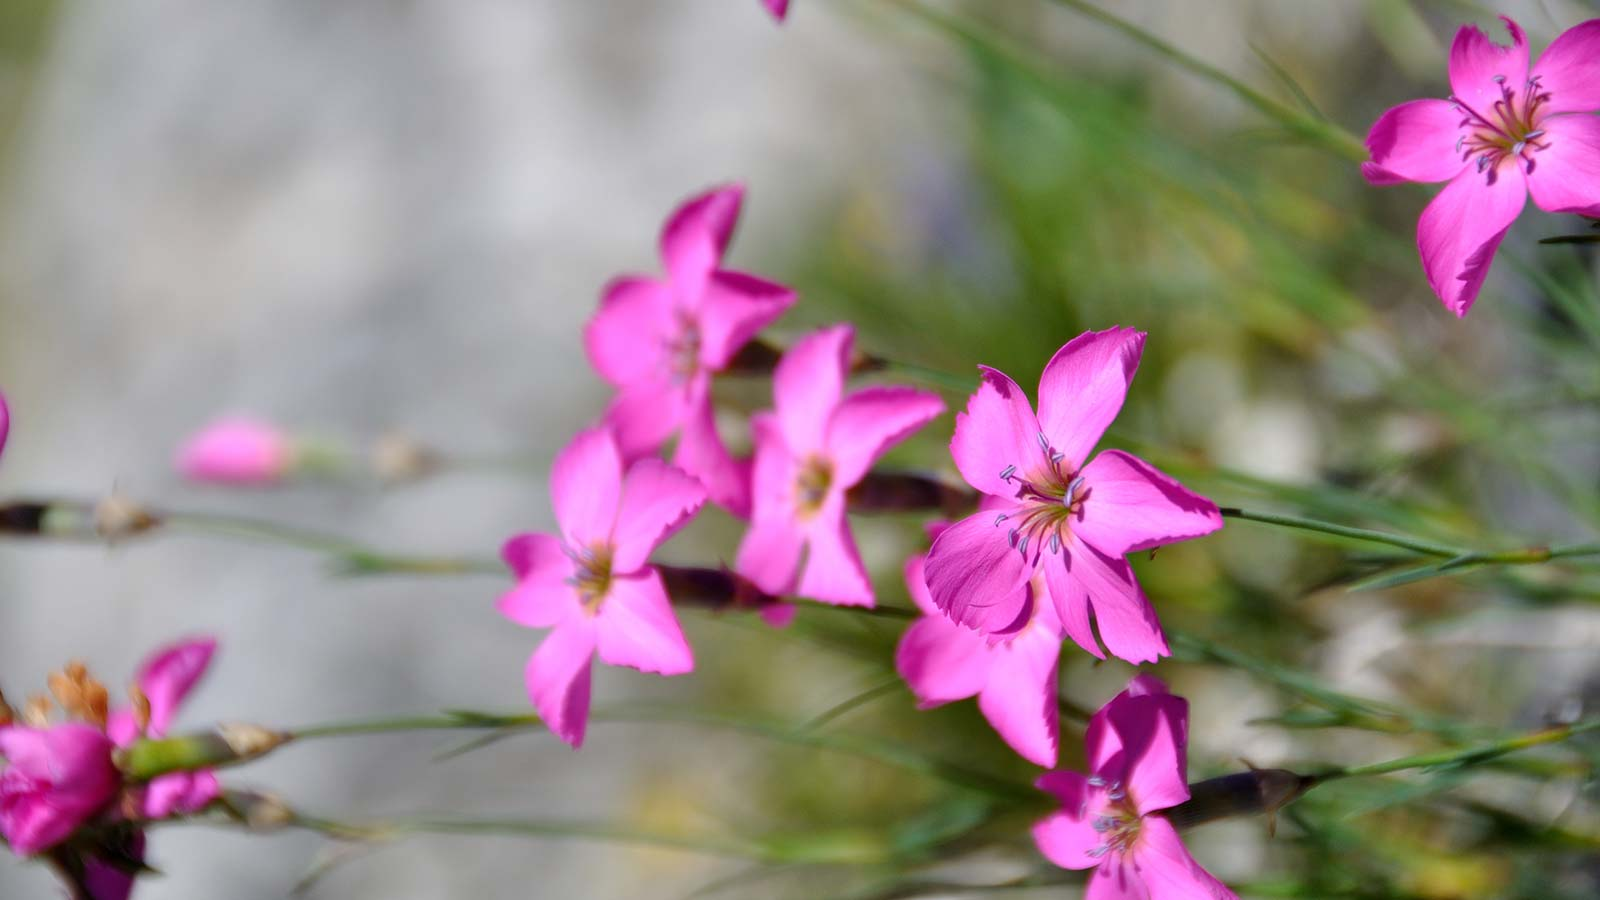 Dianthus sylvestris (Caryophyllaceae), wood pink in the Natural Park Fanes-Sennes-Braies